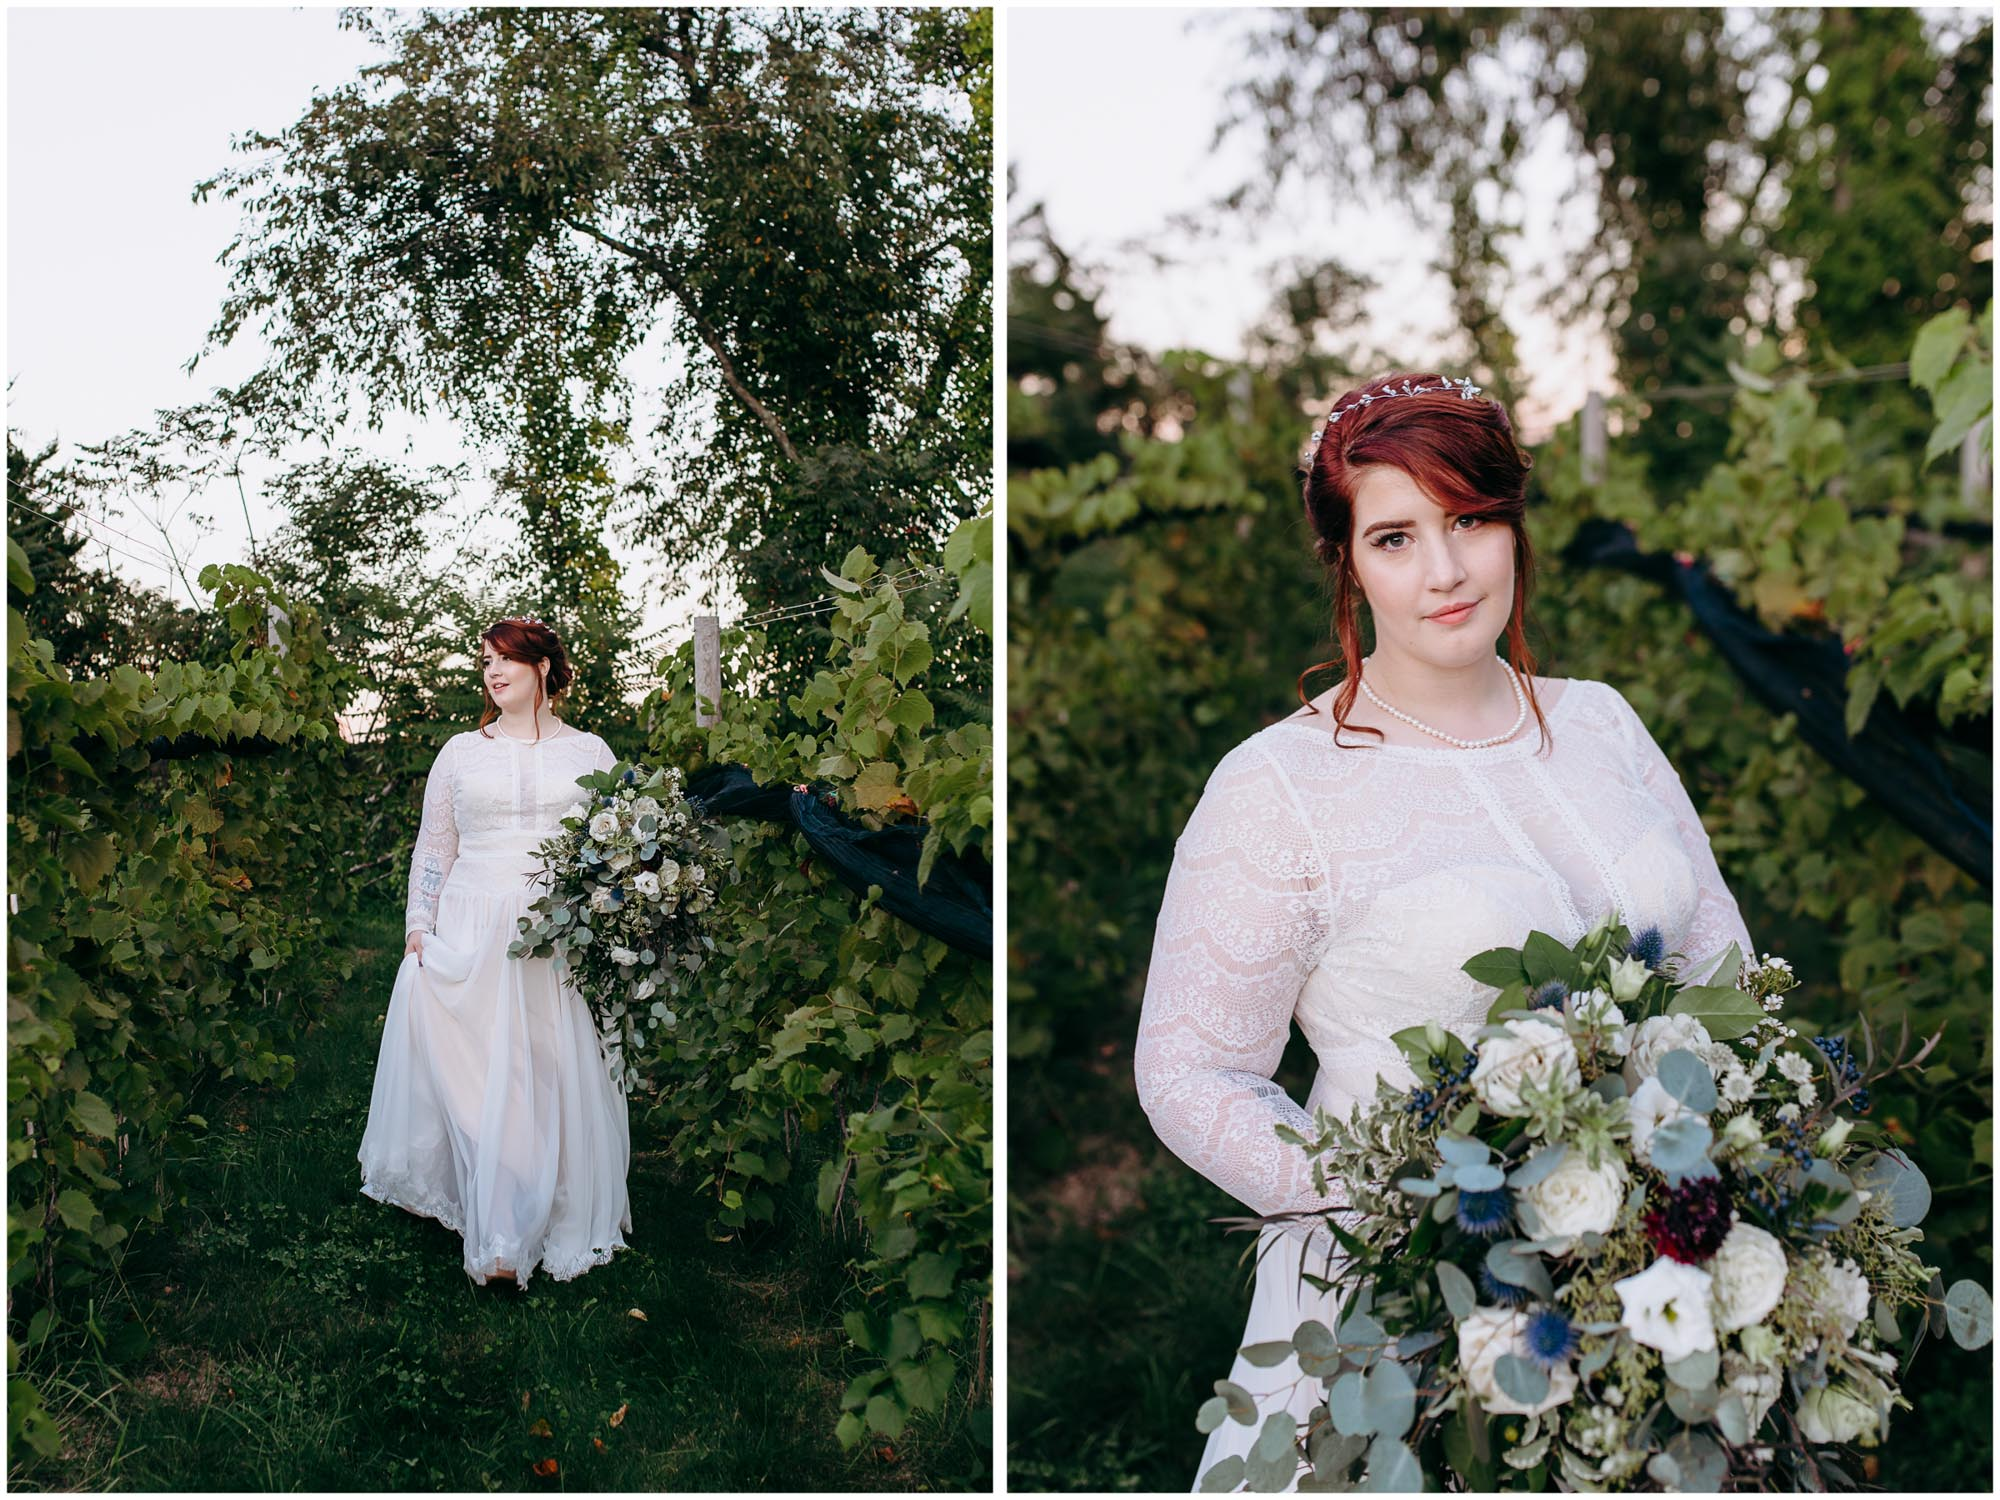 Stunning red-head bride walking gracefully in vineyard and holding beautiful bouquet by Apotheca - by Ashleigh Laureen Photography at LaBelle Winery in Amherst, New Hampshire